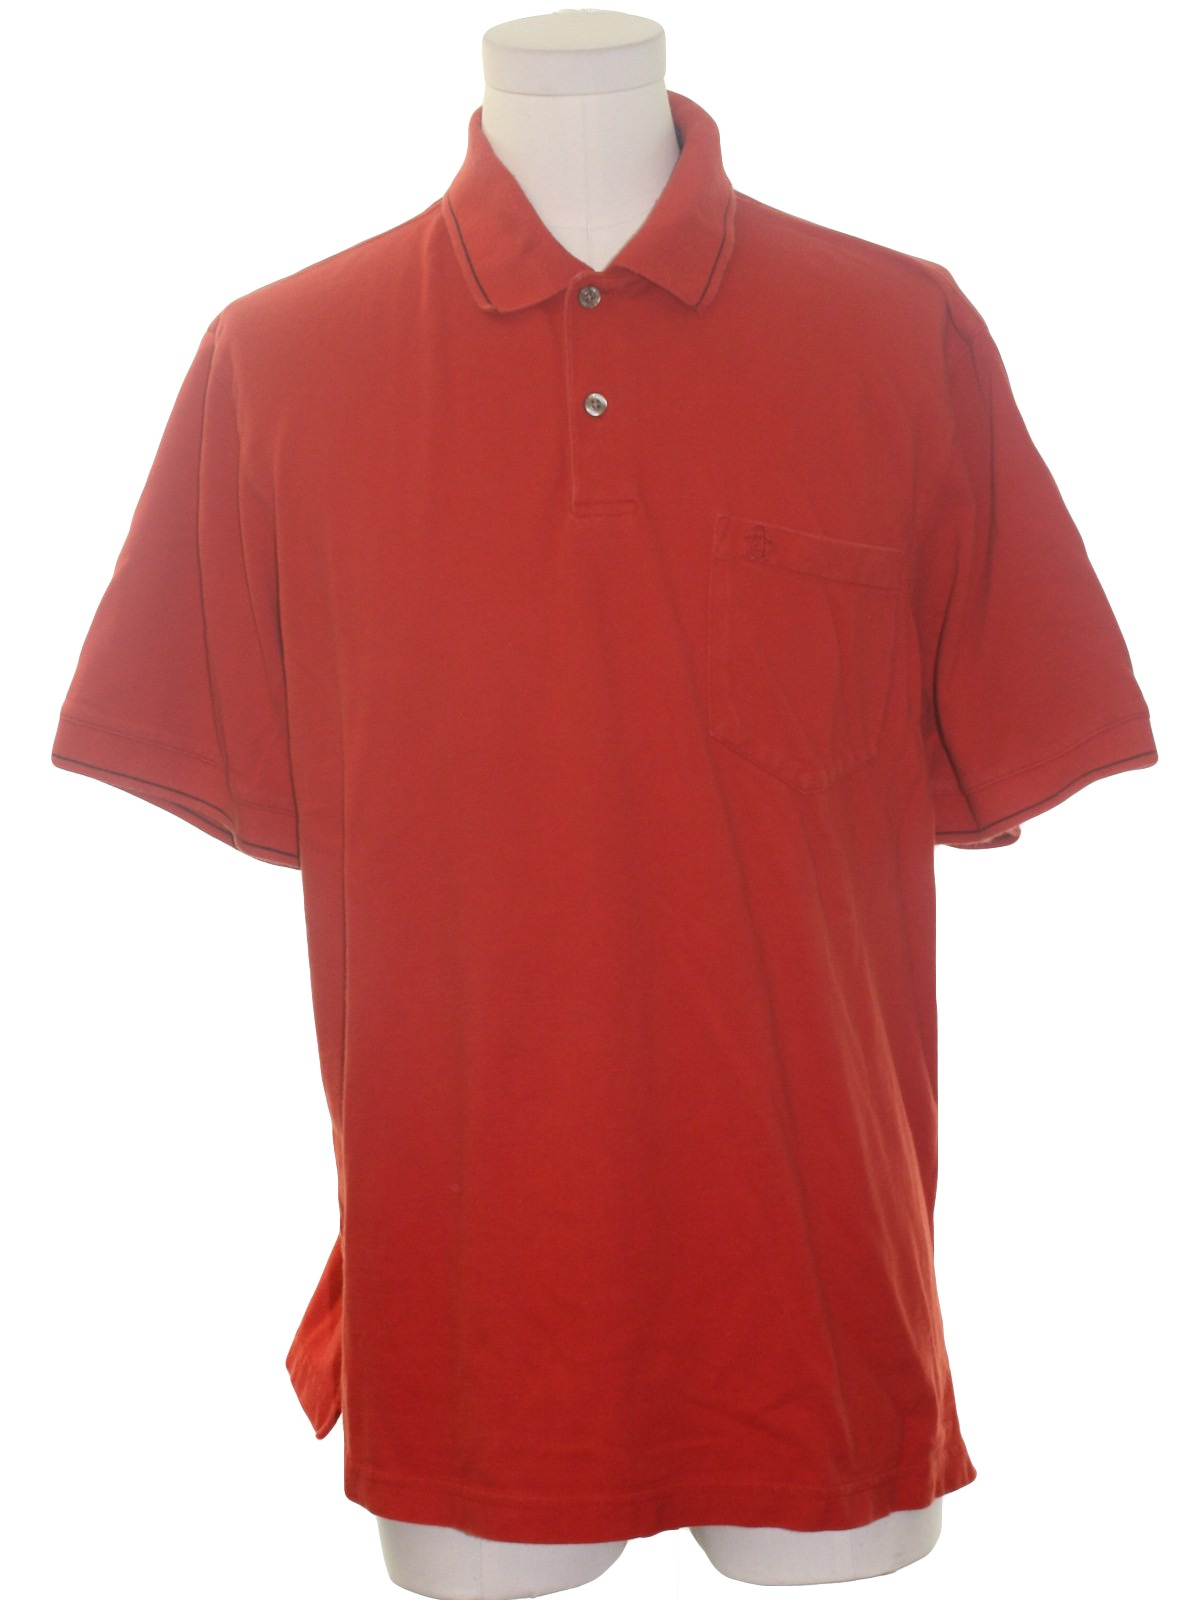 Shirt 90s Penguin Grand Slam Mens Red Cotton Short Sleeve